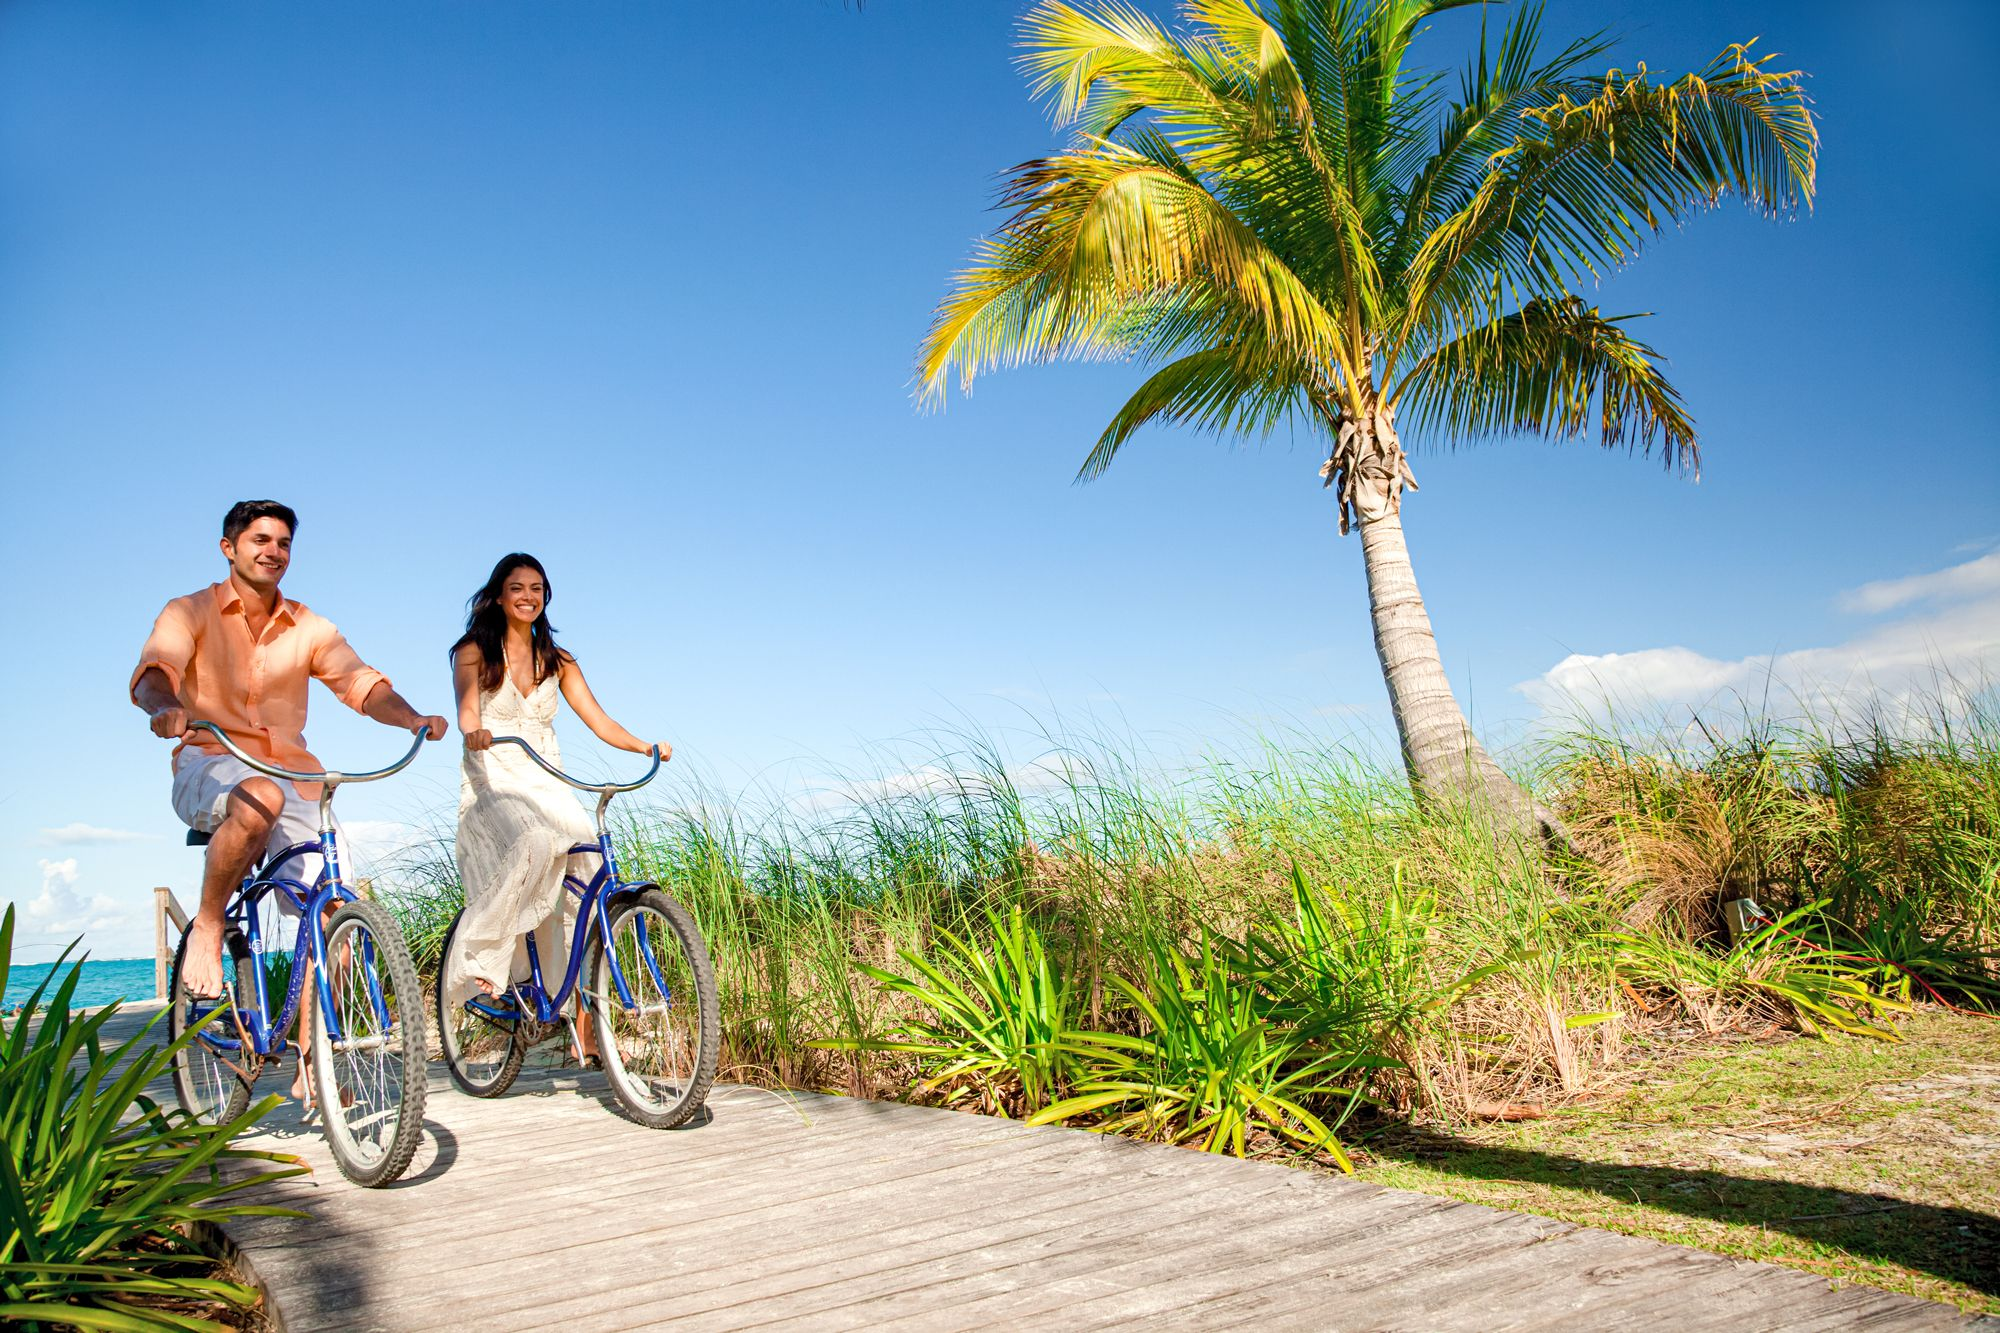 Beaches Turks Caicos Bike